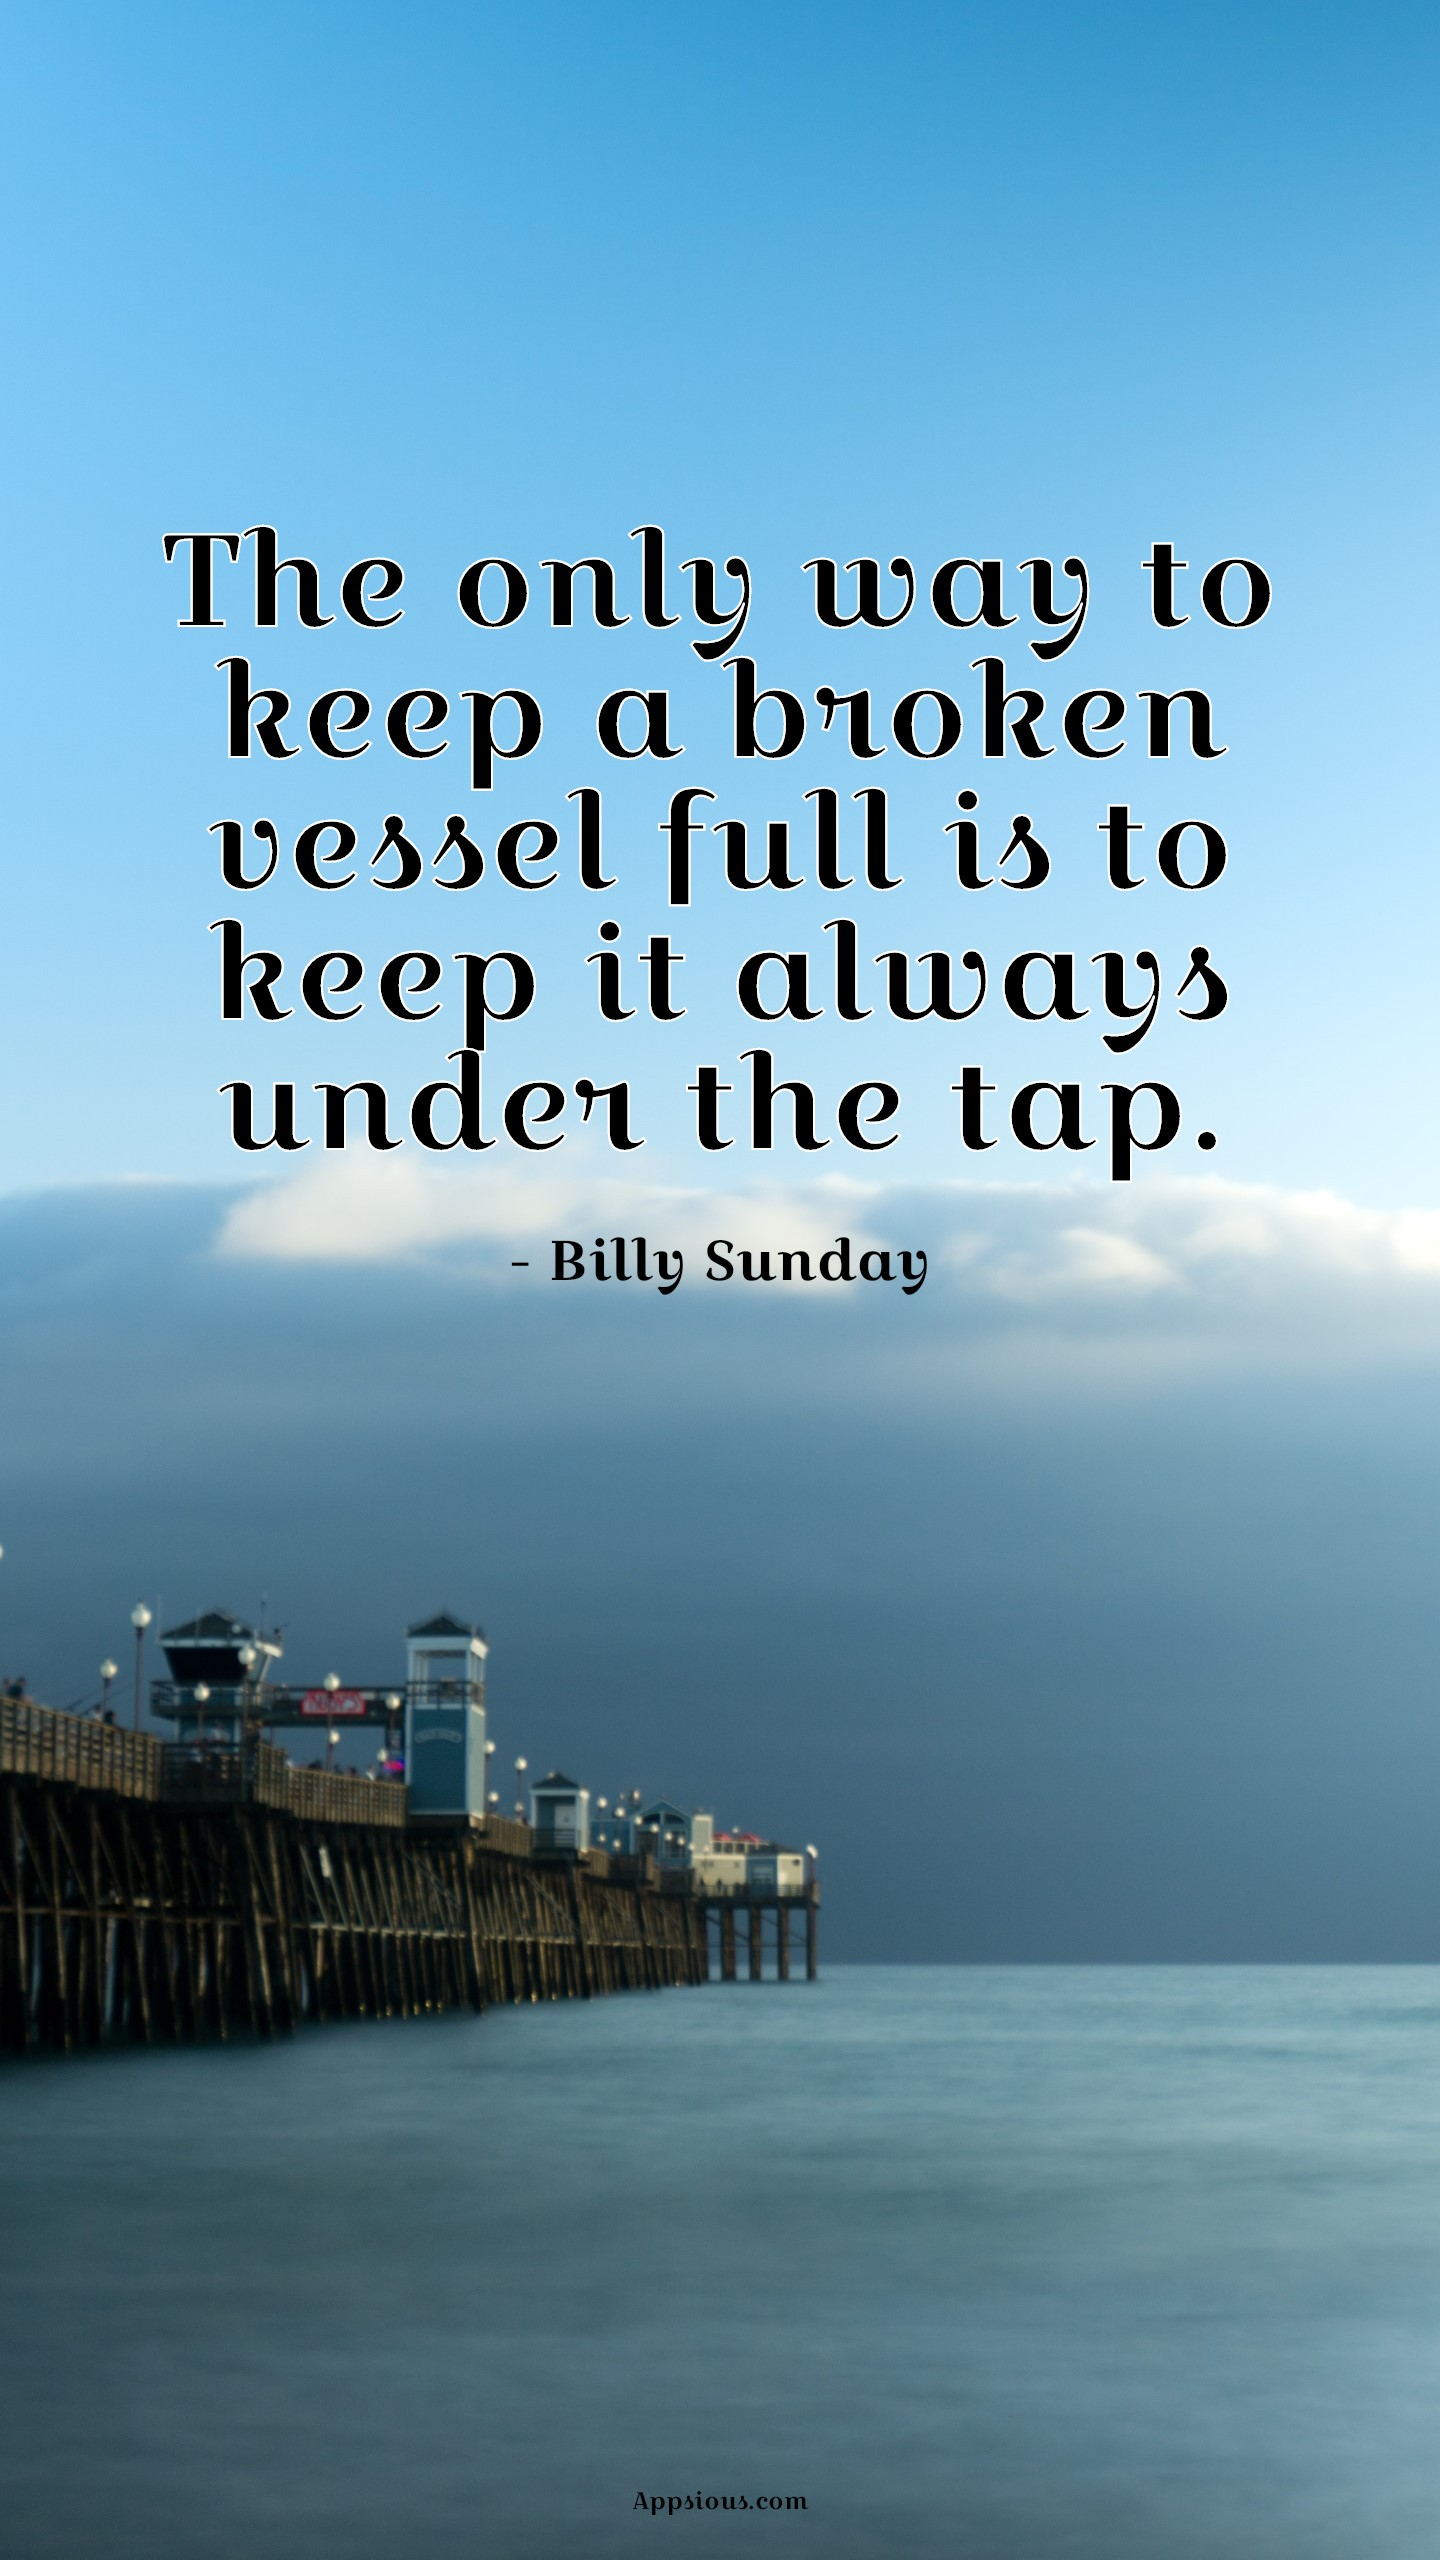 The only way to keep a broken vessel full is to keep it always under the tap.